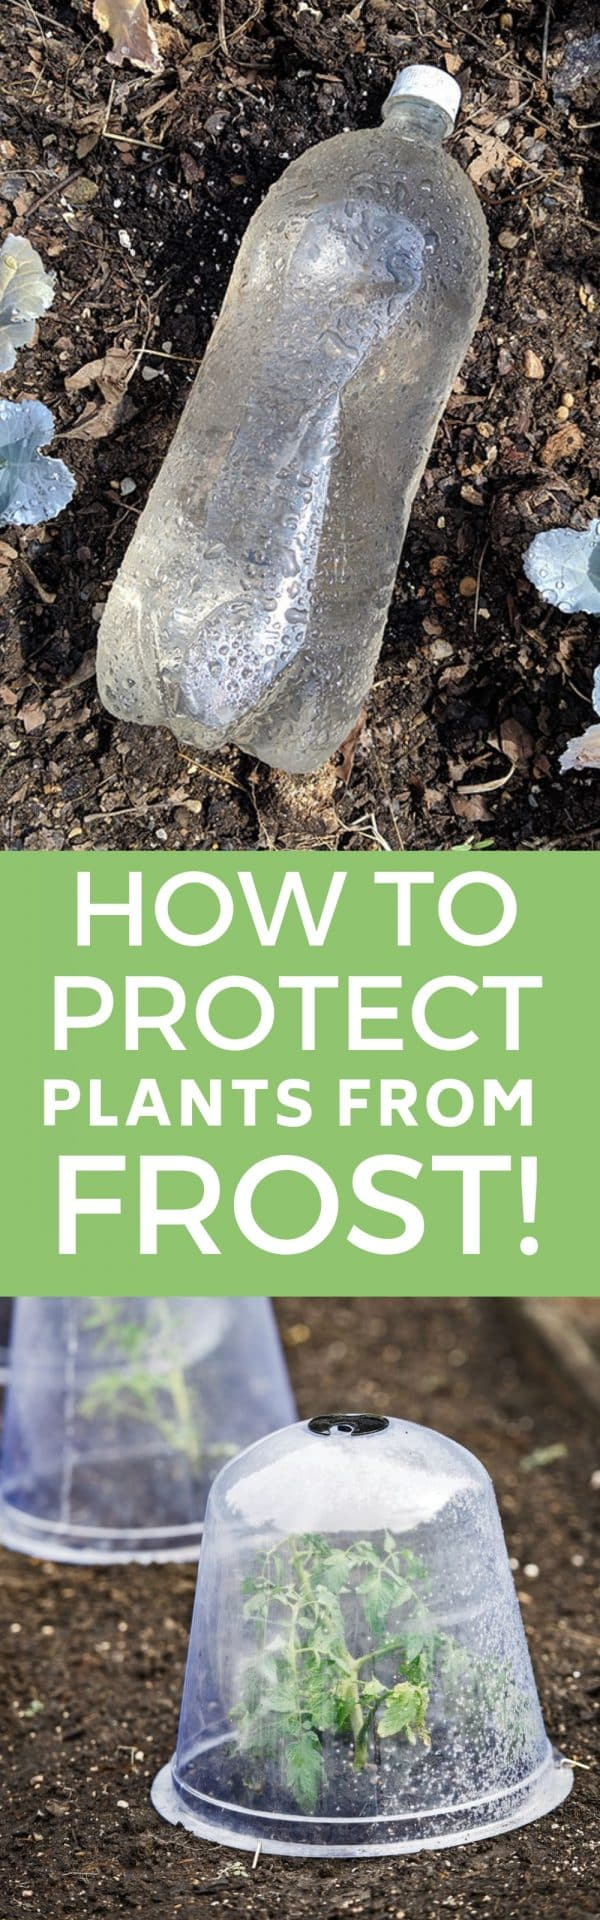 Easy DIY tips to protect your plants from frost and cold. Learn how to harden off your plants, use bottles for heat and cover your vegetables.